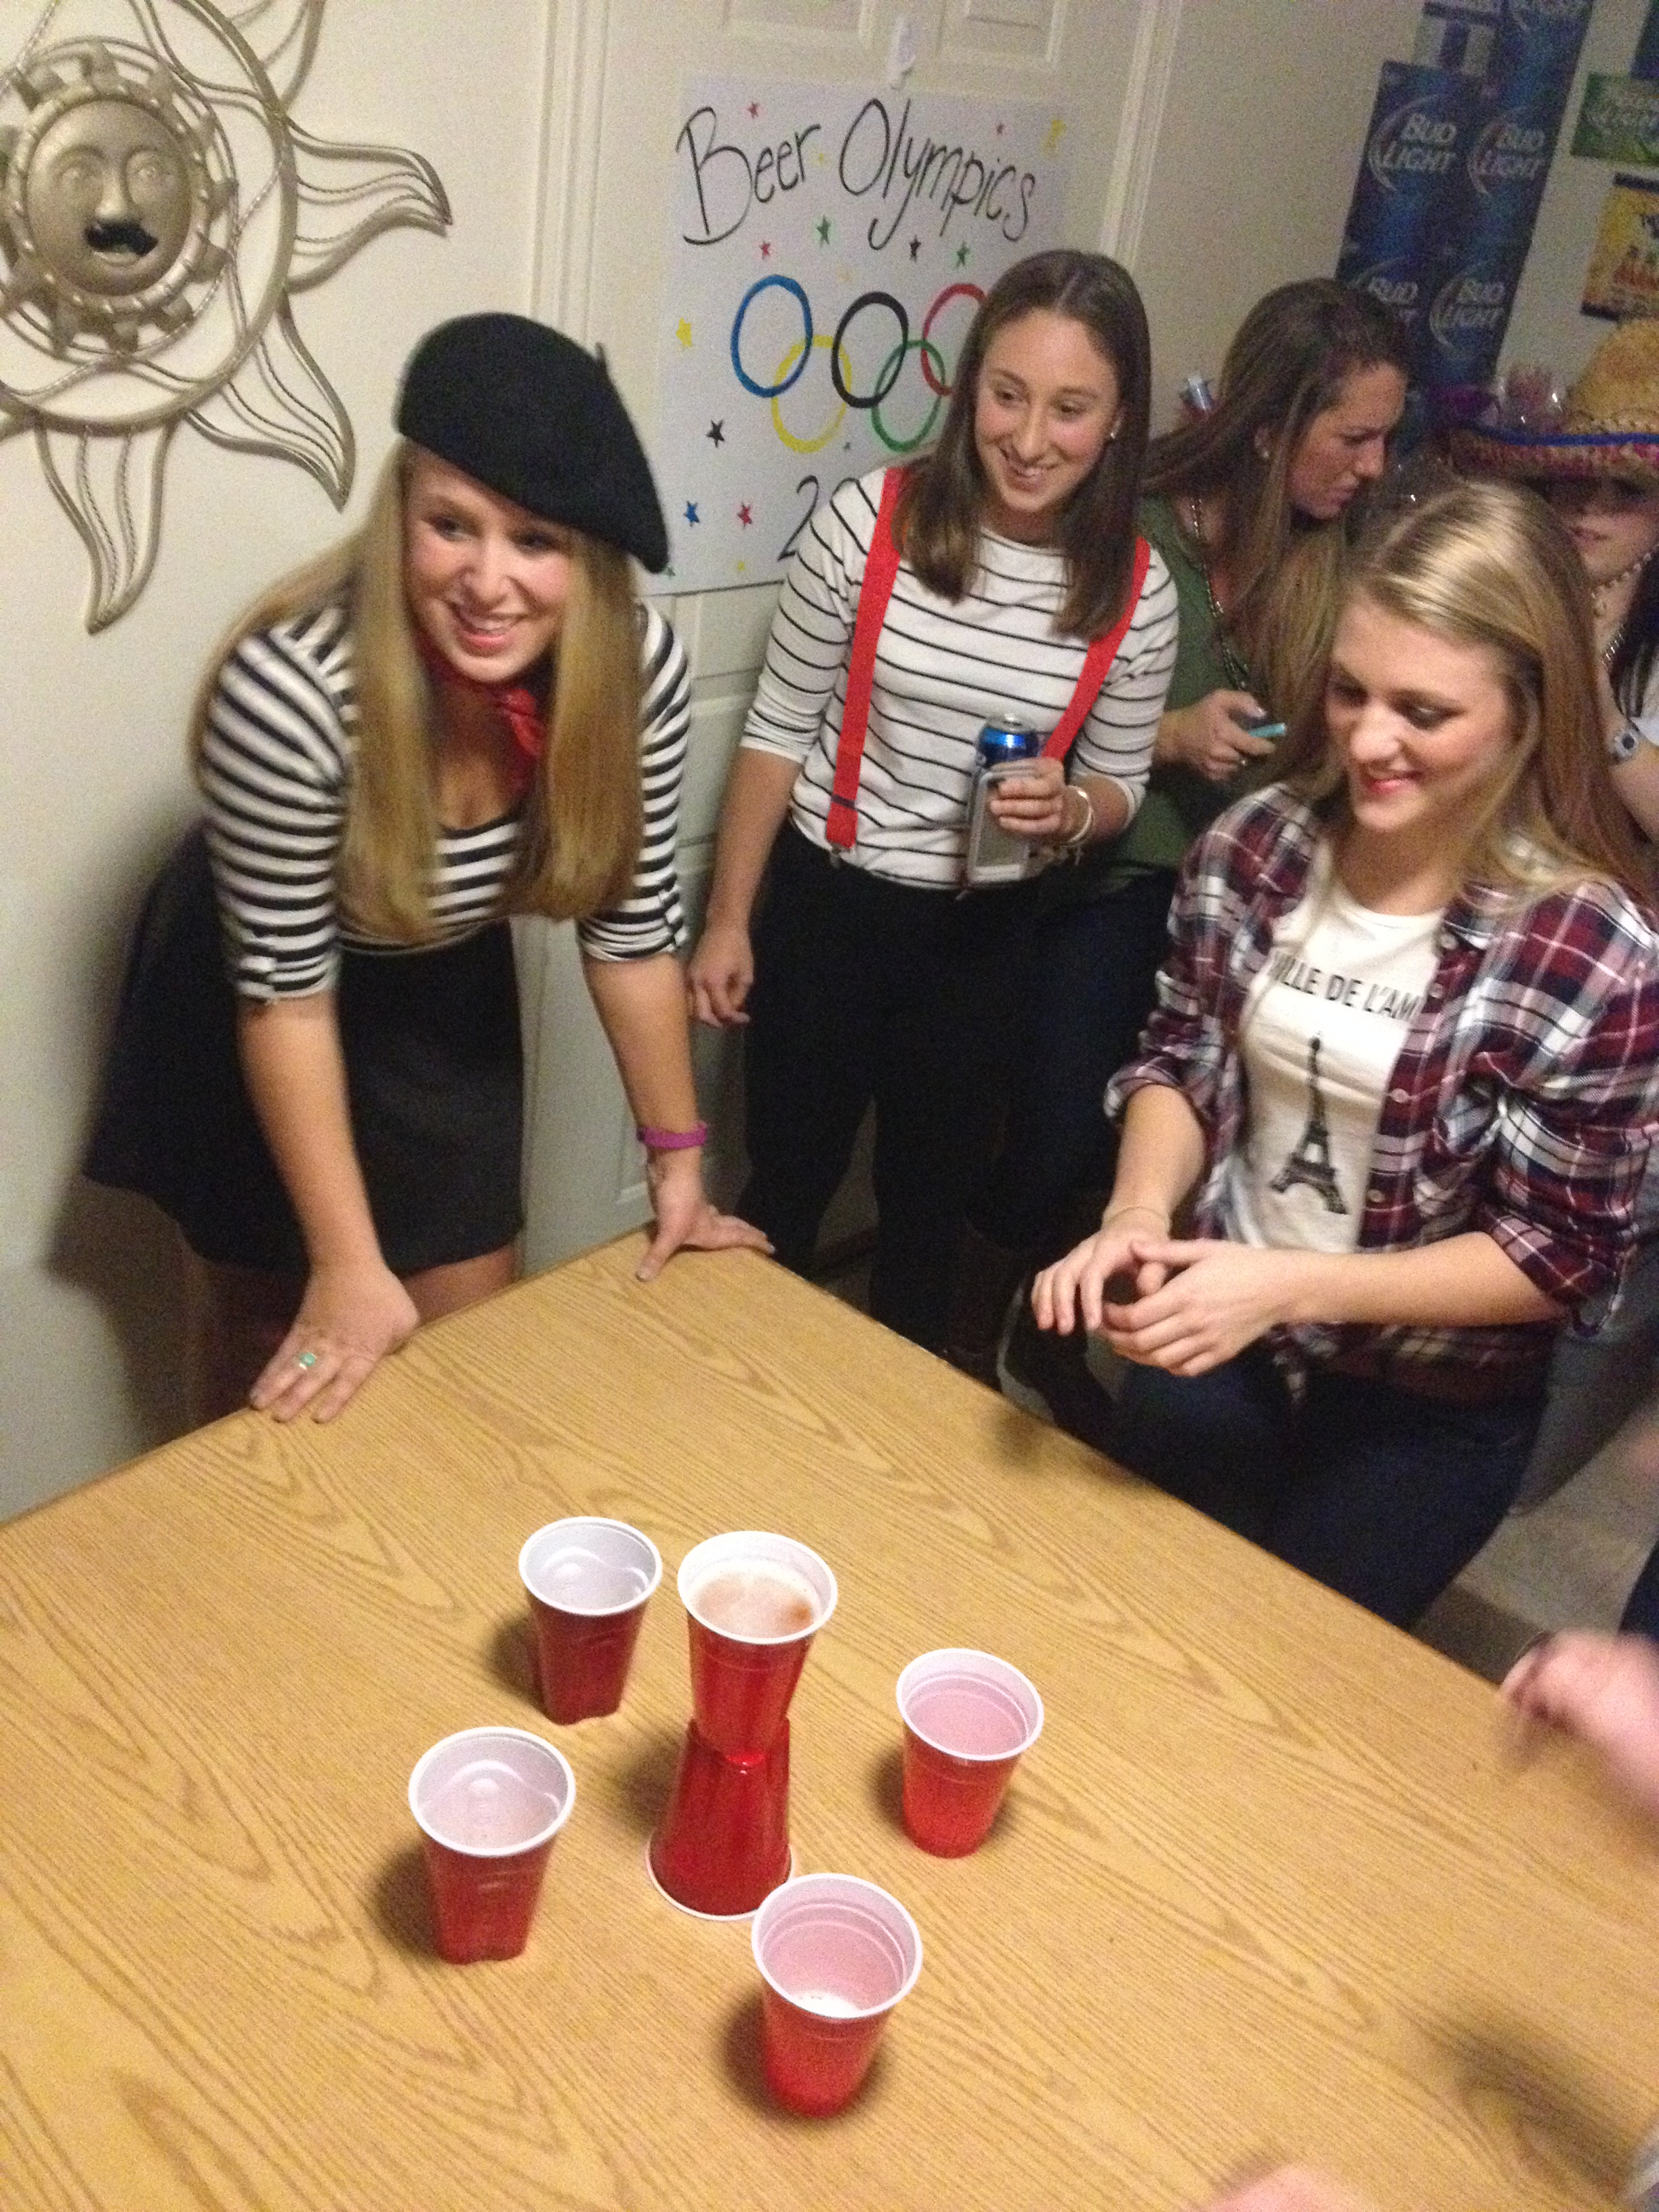 Funny Countries For Beer Olympics : funny, countries, olympics, Olympics, Twenty, Something